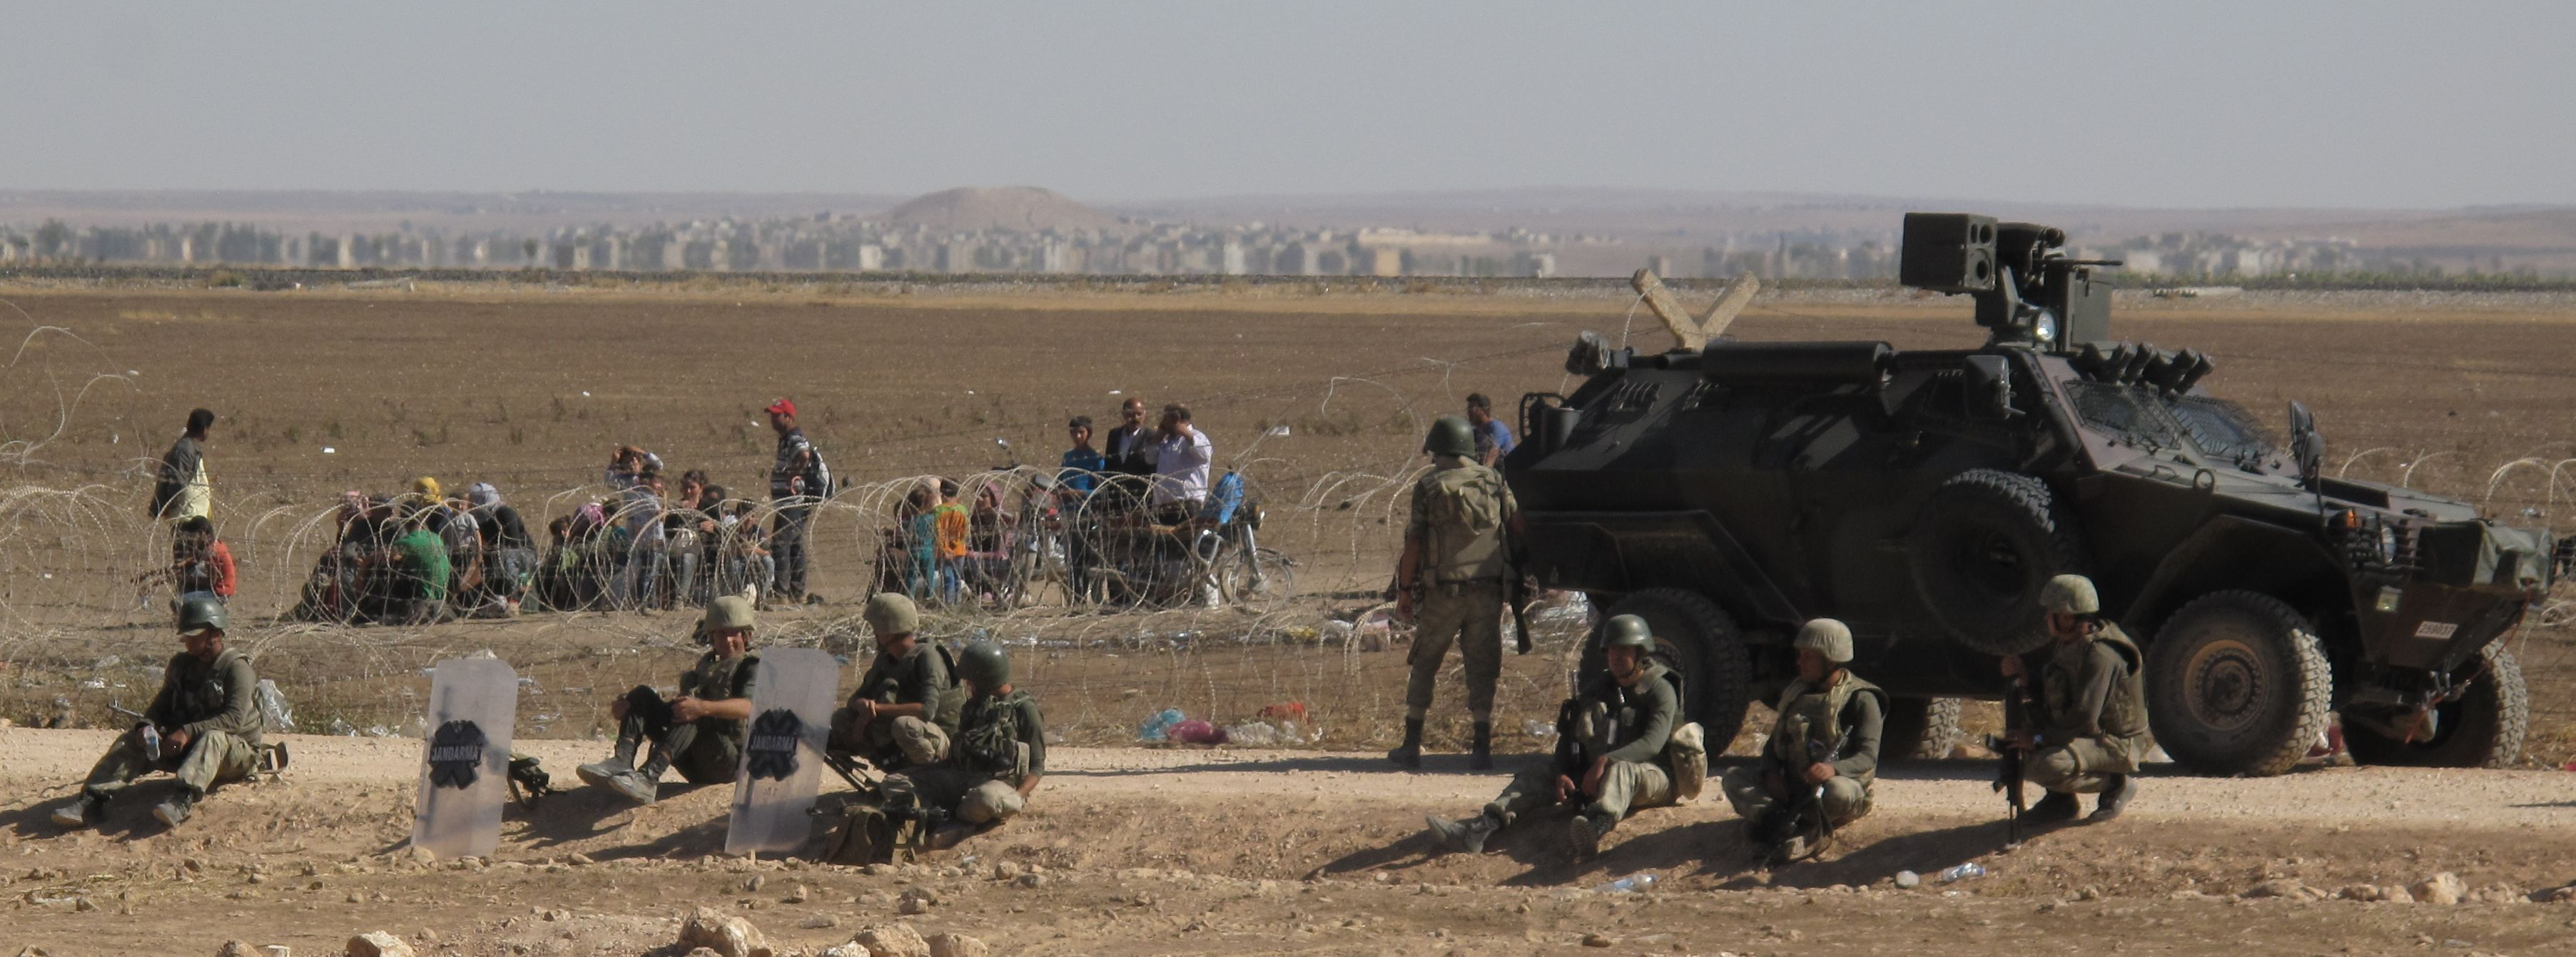 Scores of Syrian refugees from Kobane - under threat of capture by Islamic State - sit in the sun waiting to be allowed to cross into Turkey. Sept. 26, 2014. The outskirts of the village are visible in the background.